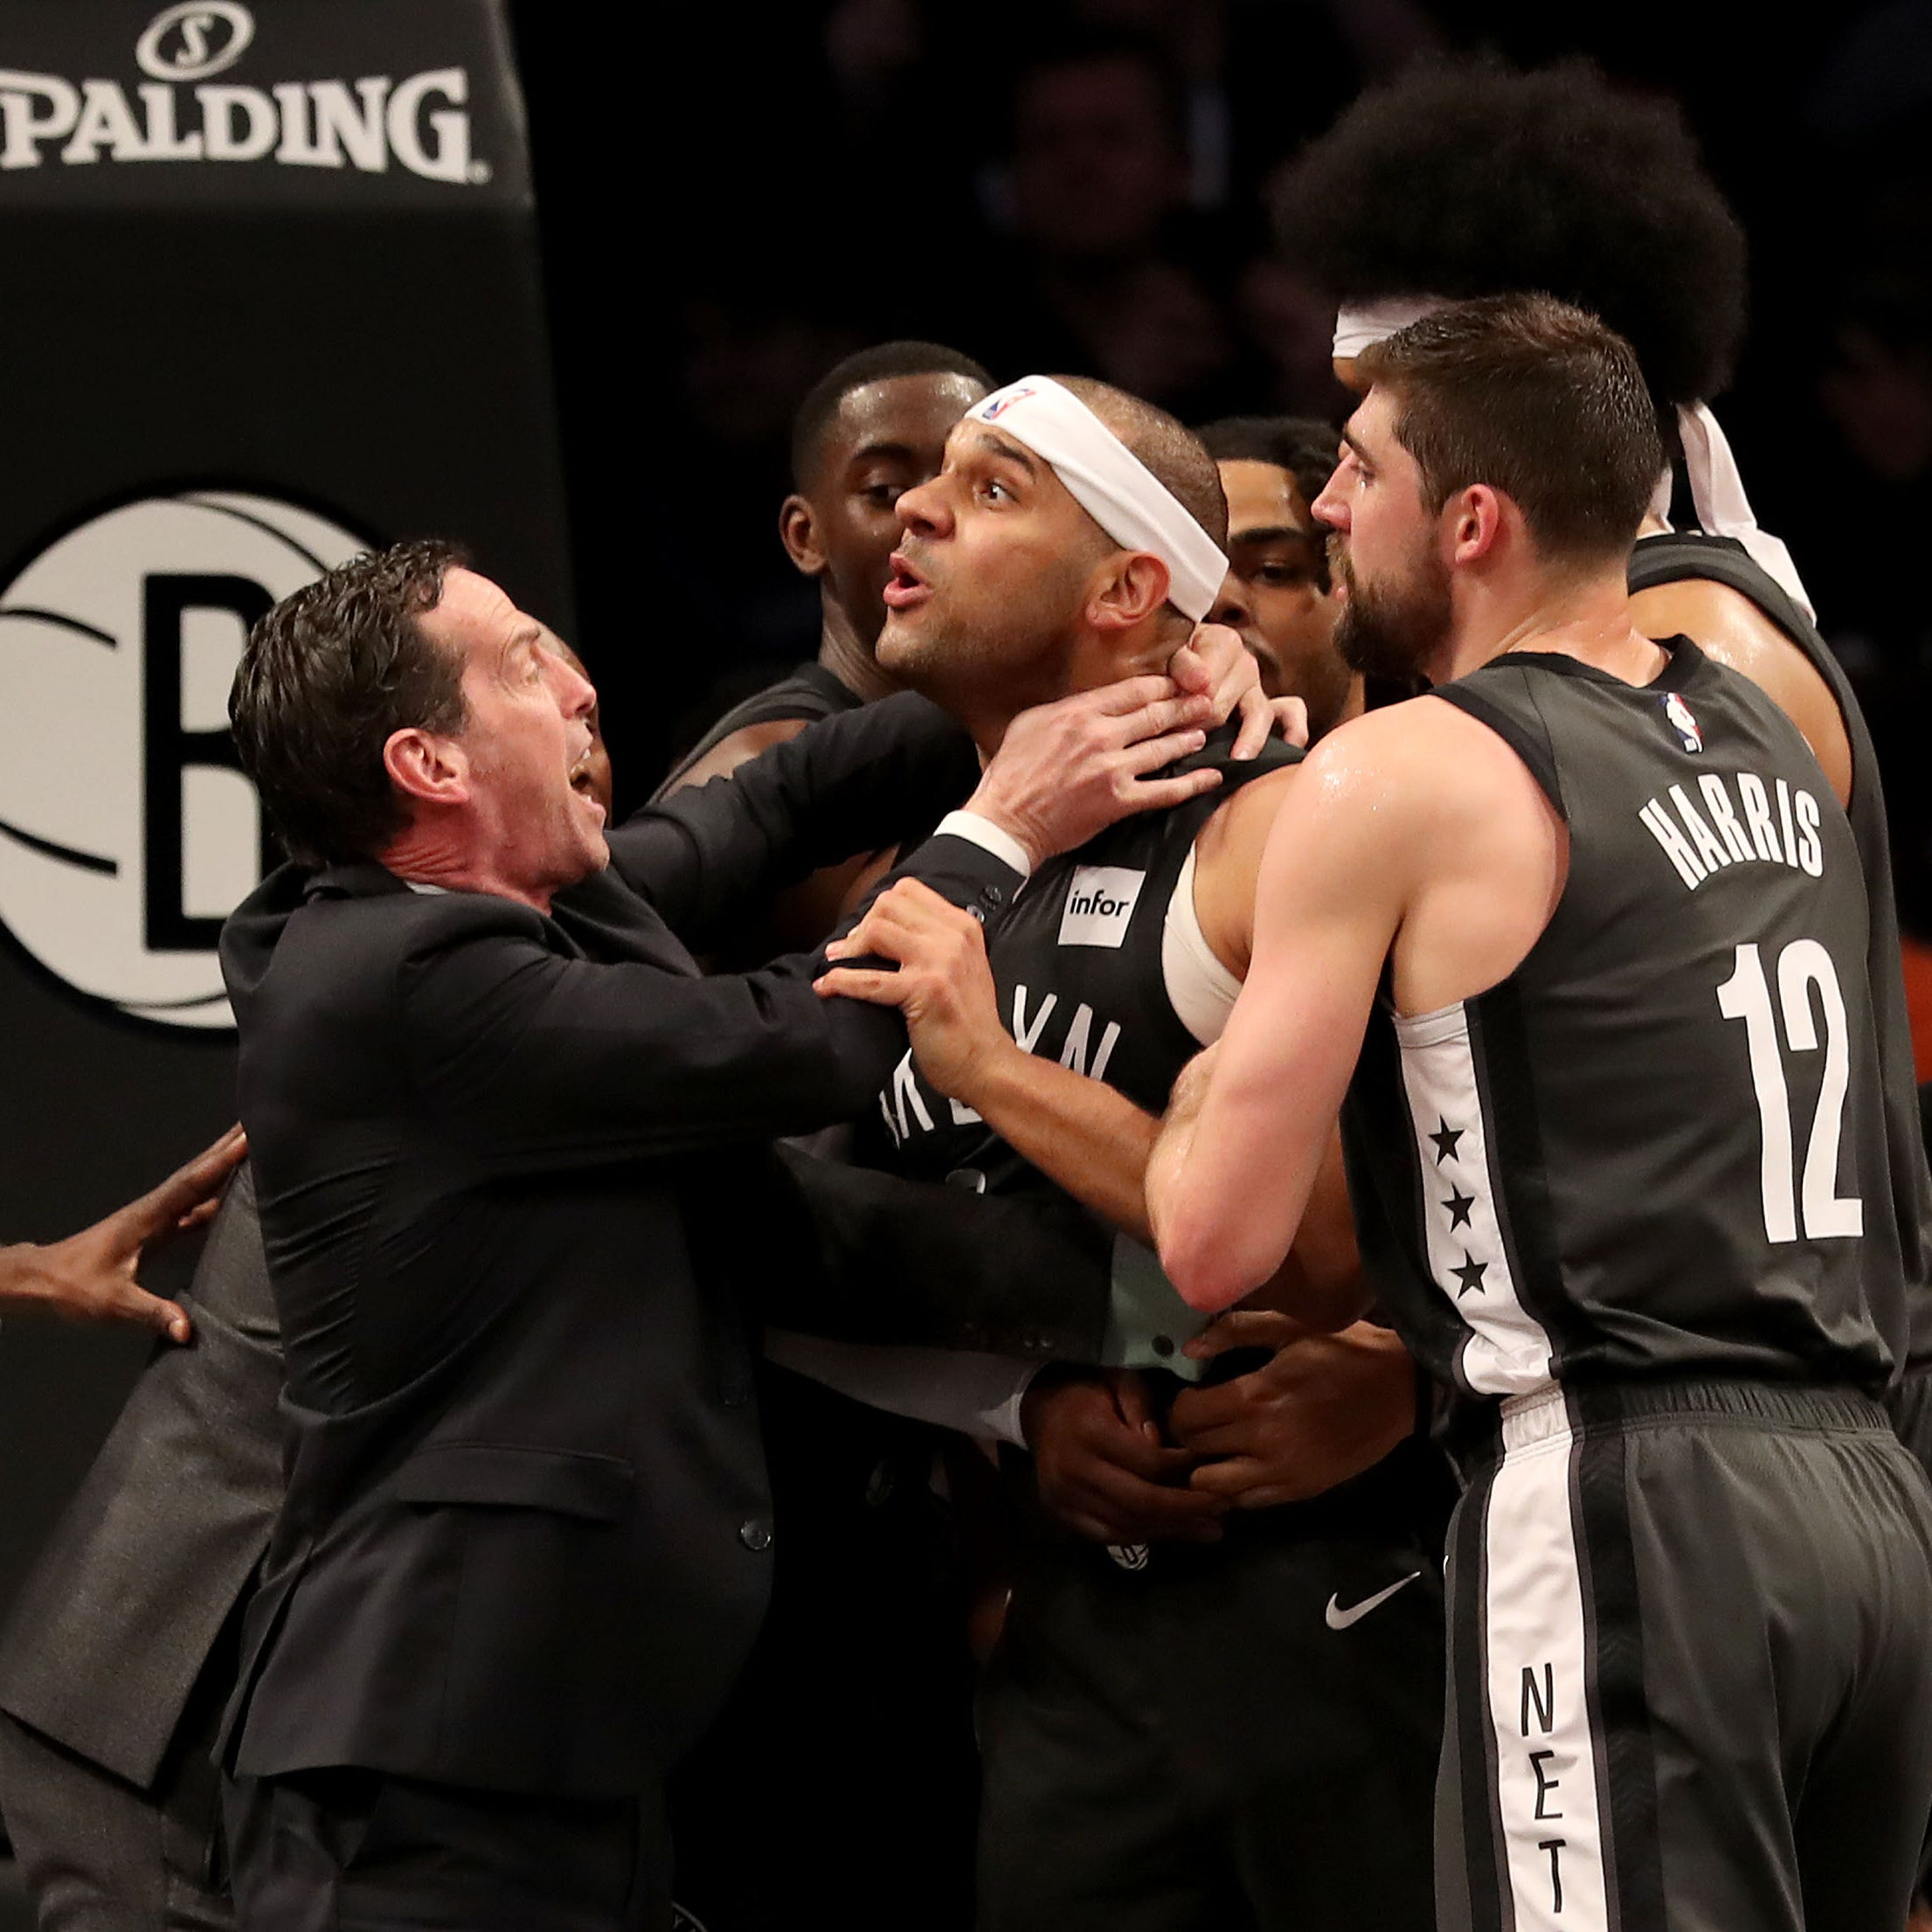 Brooklyn Nets play with urgency but Philadelphia 76ers win fight in end